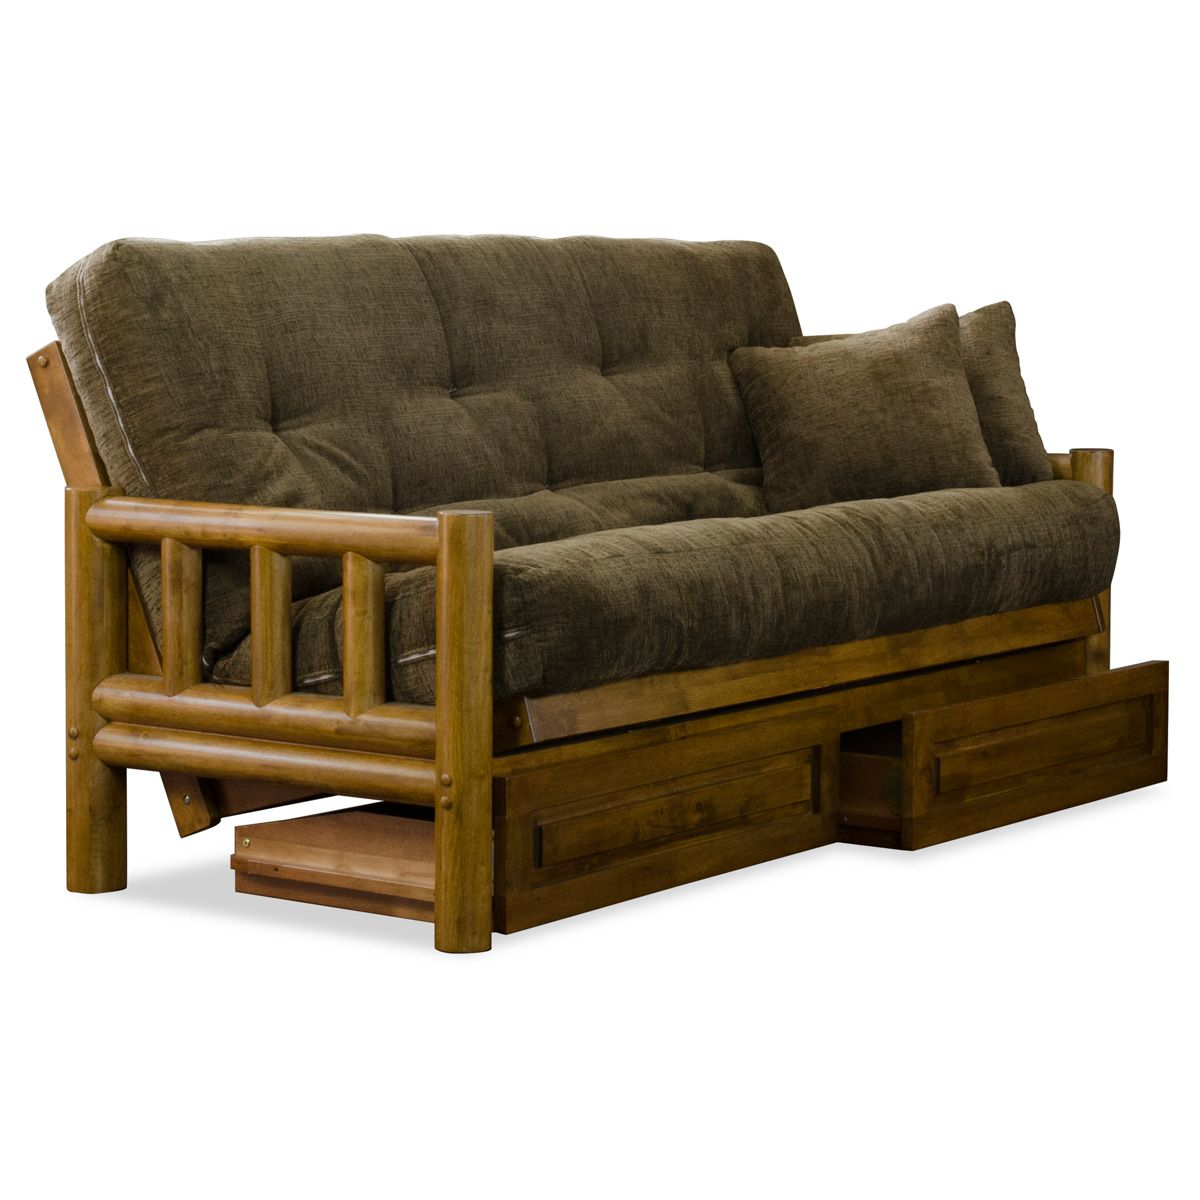 Tahoe Log Futon Set - Heritage, Designer Mattress Made in USA ...